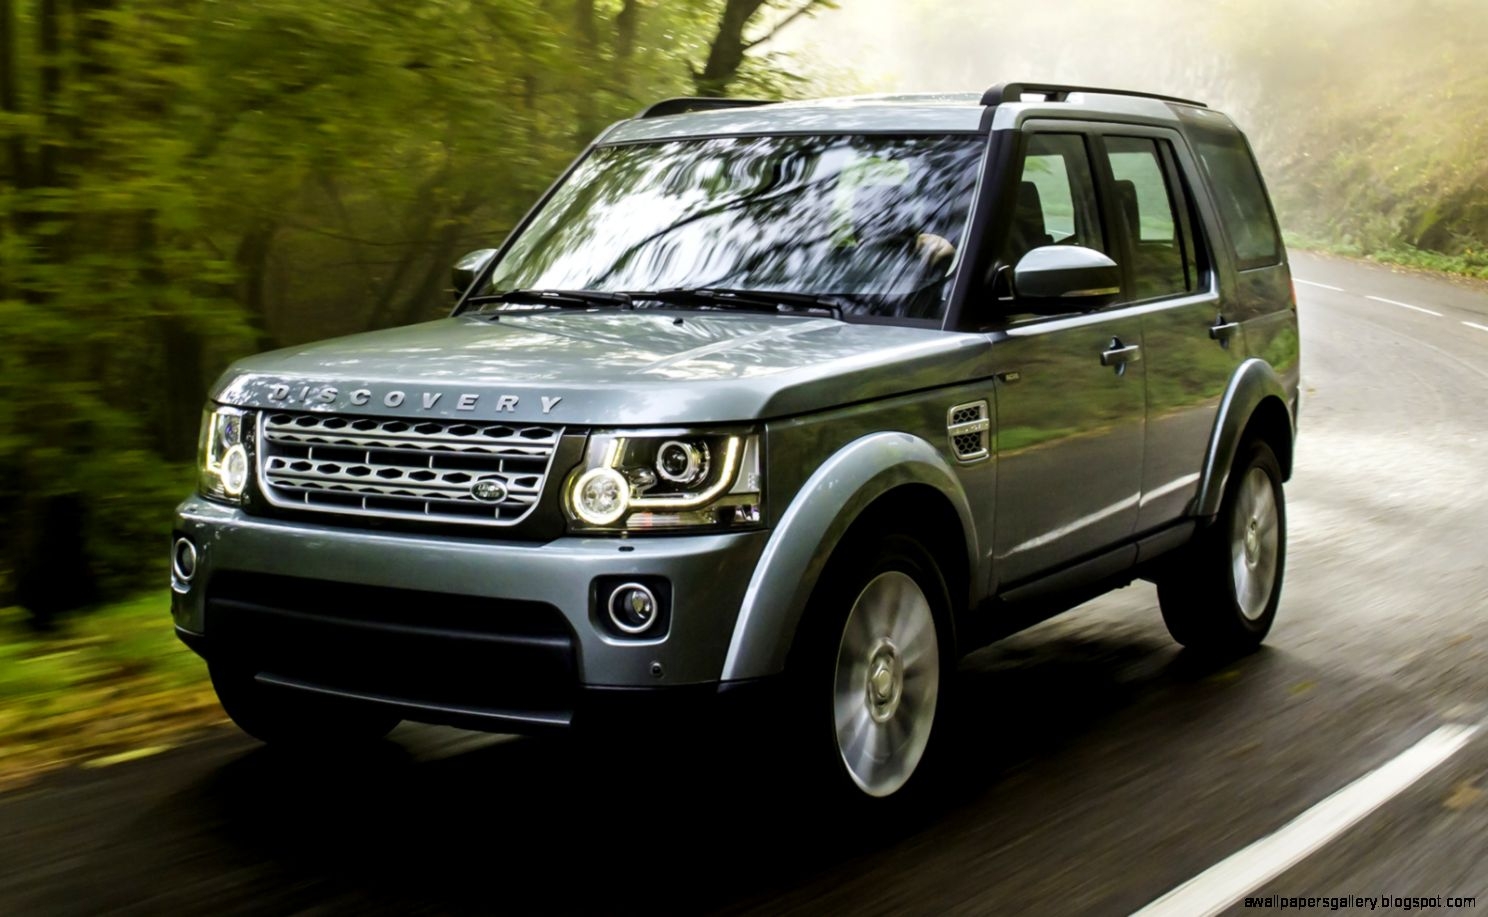 range rover lr4 wallpapers gallery. Black Bedroom Furniture Sets. Home Design Ideas